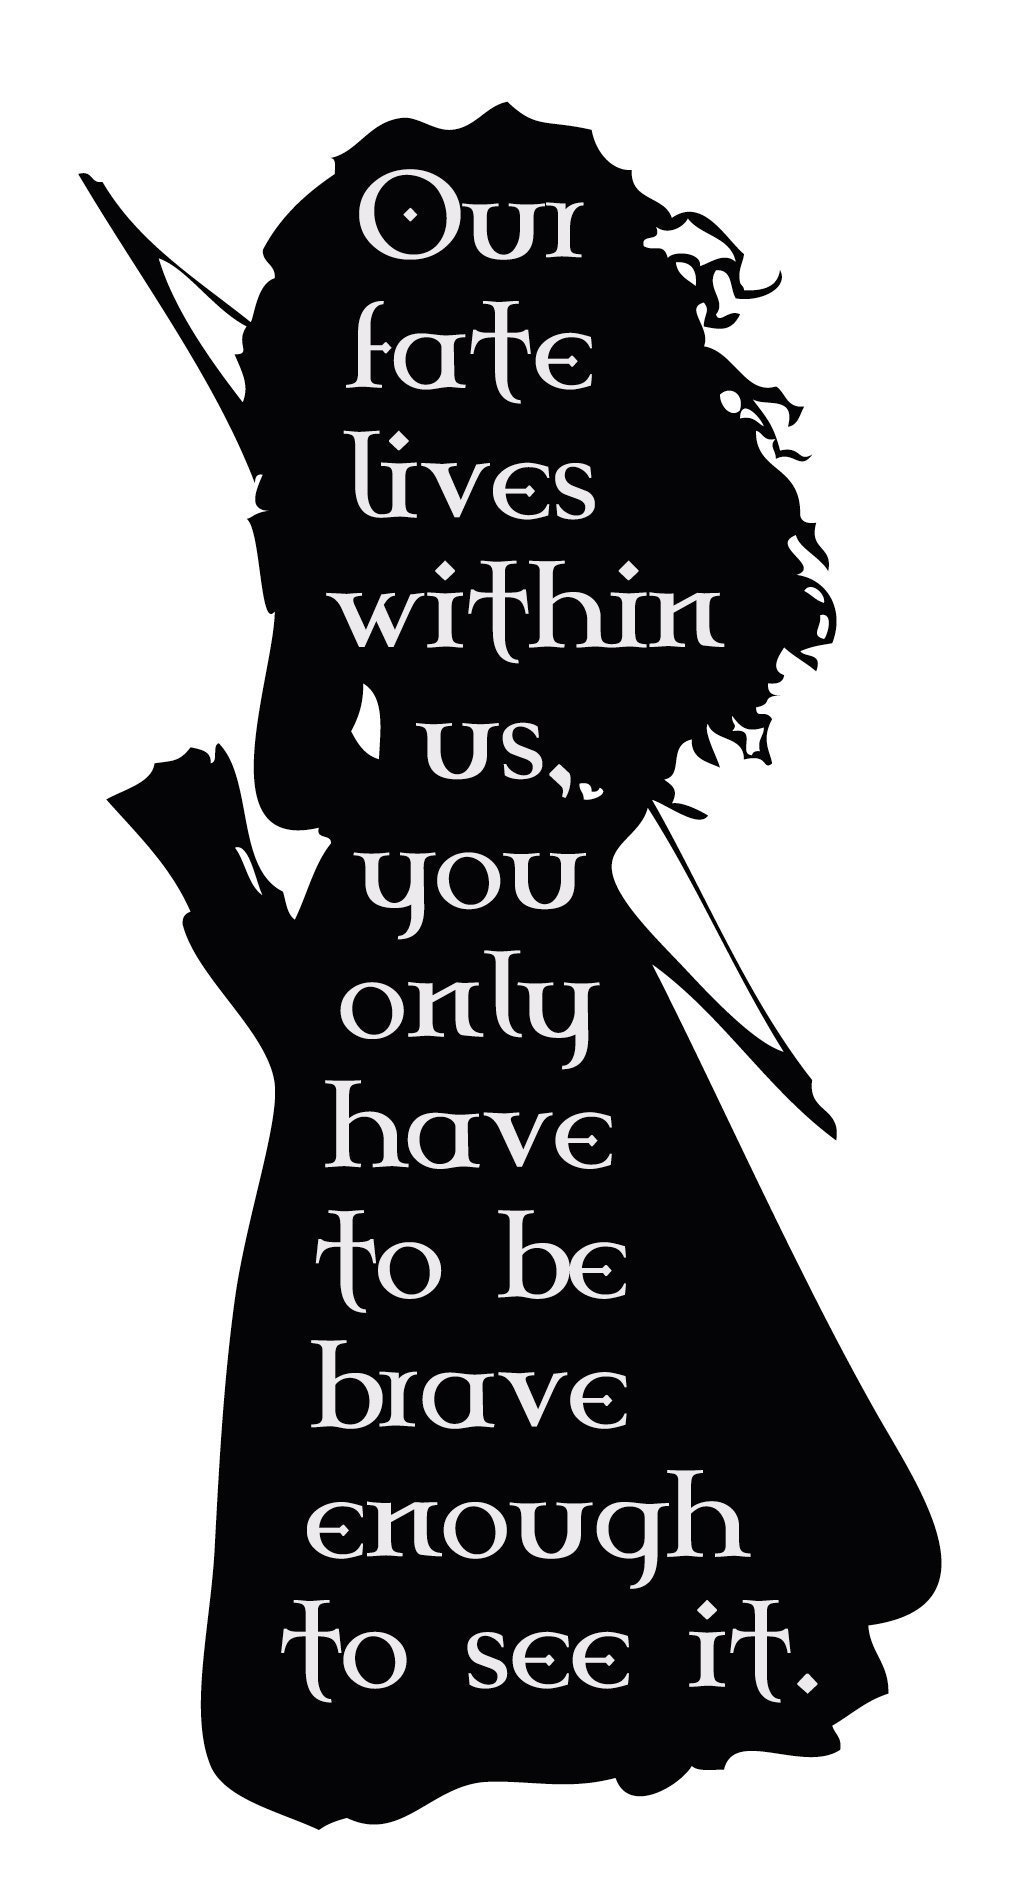 Personalized Wall Decal for Girls Room - Merida Heroine from Brave Movie -''Our Fate Lies Within Us'' Vinyl Wall Lettering Decal - Decor for Girls Room, Baby Nursery